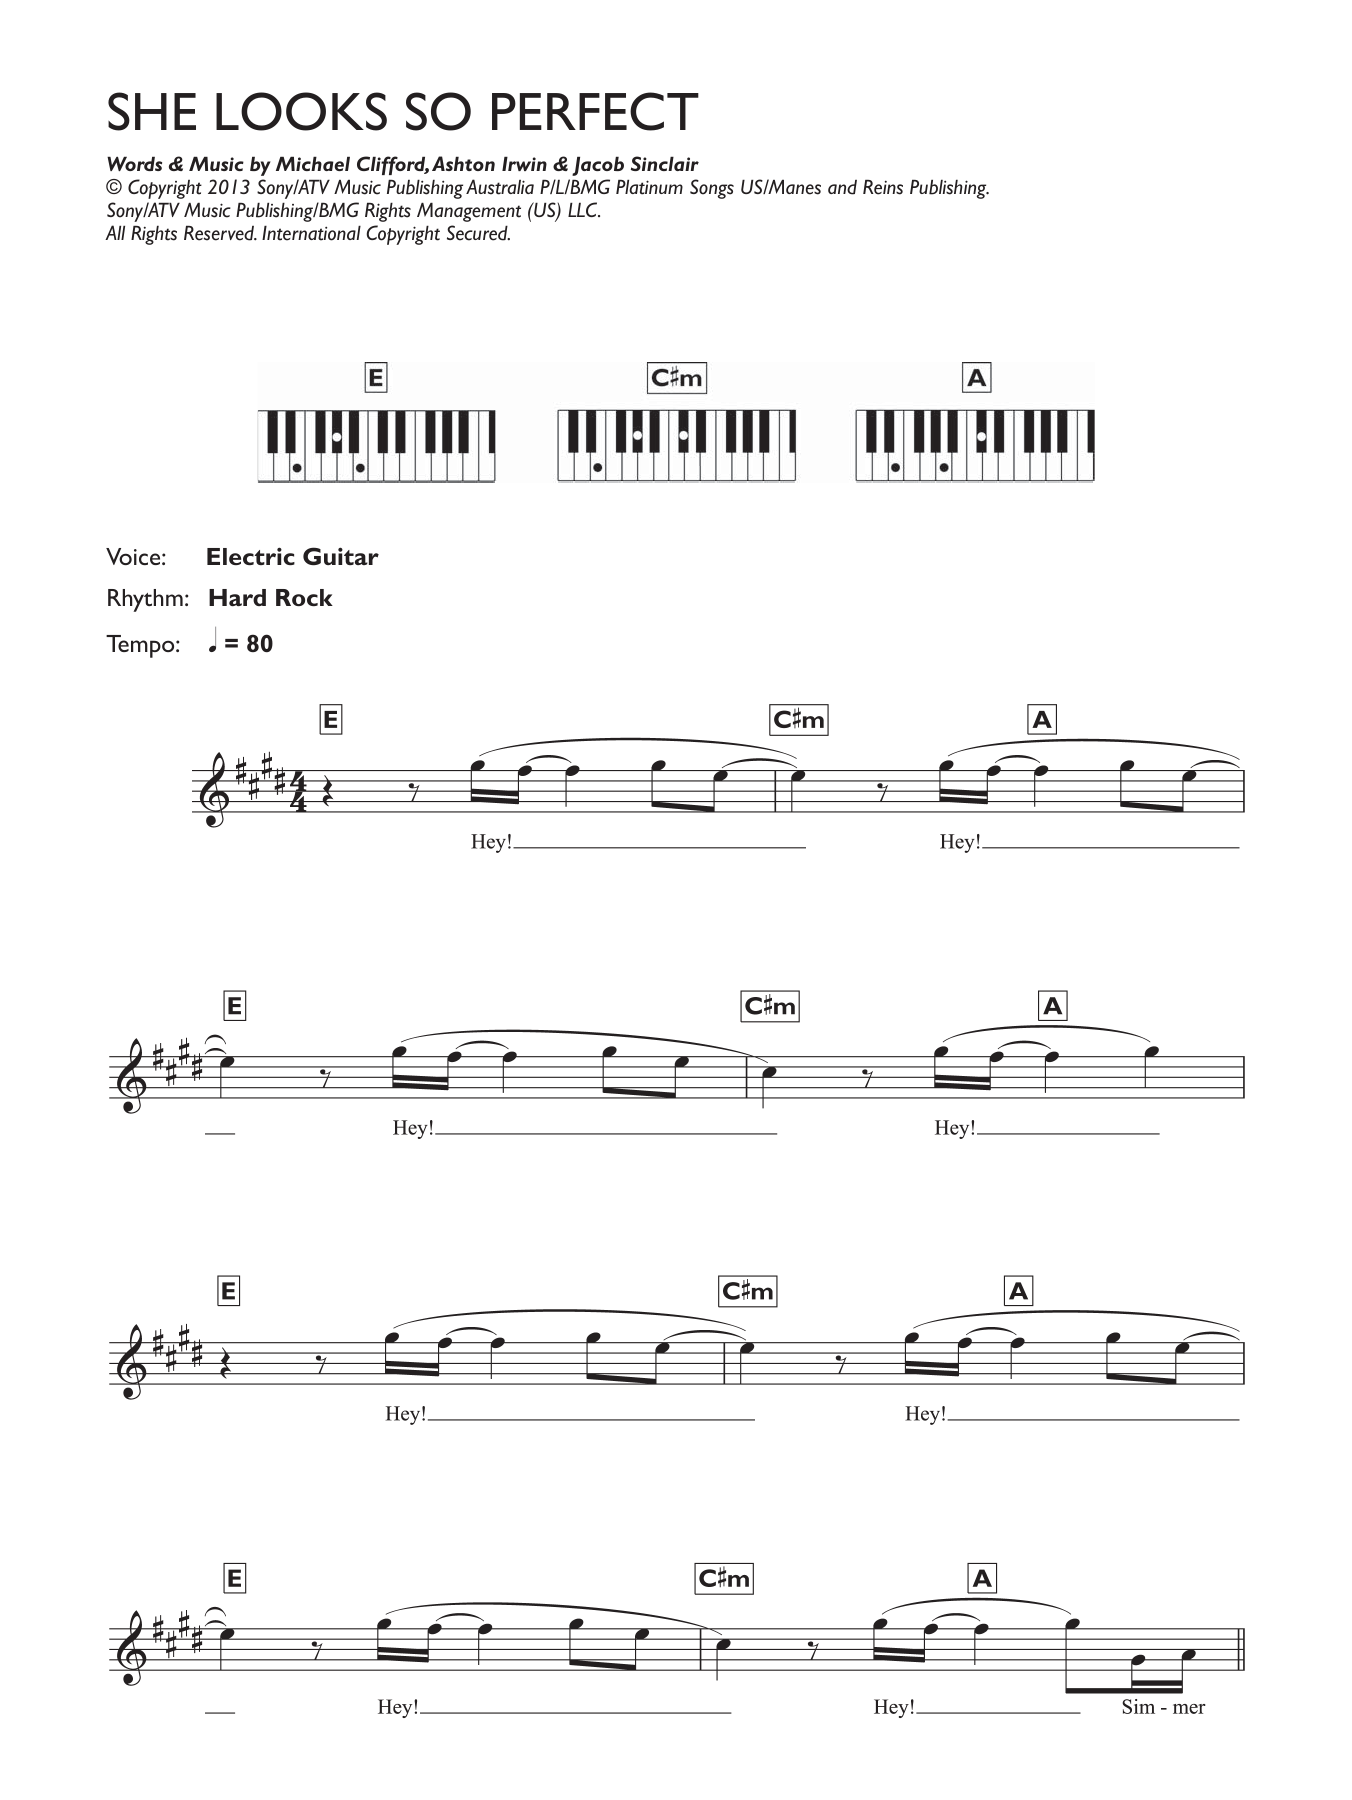 Sheet Music Digital Files To Print - Licensed Ashton Irwin Digital